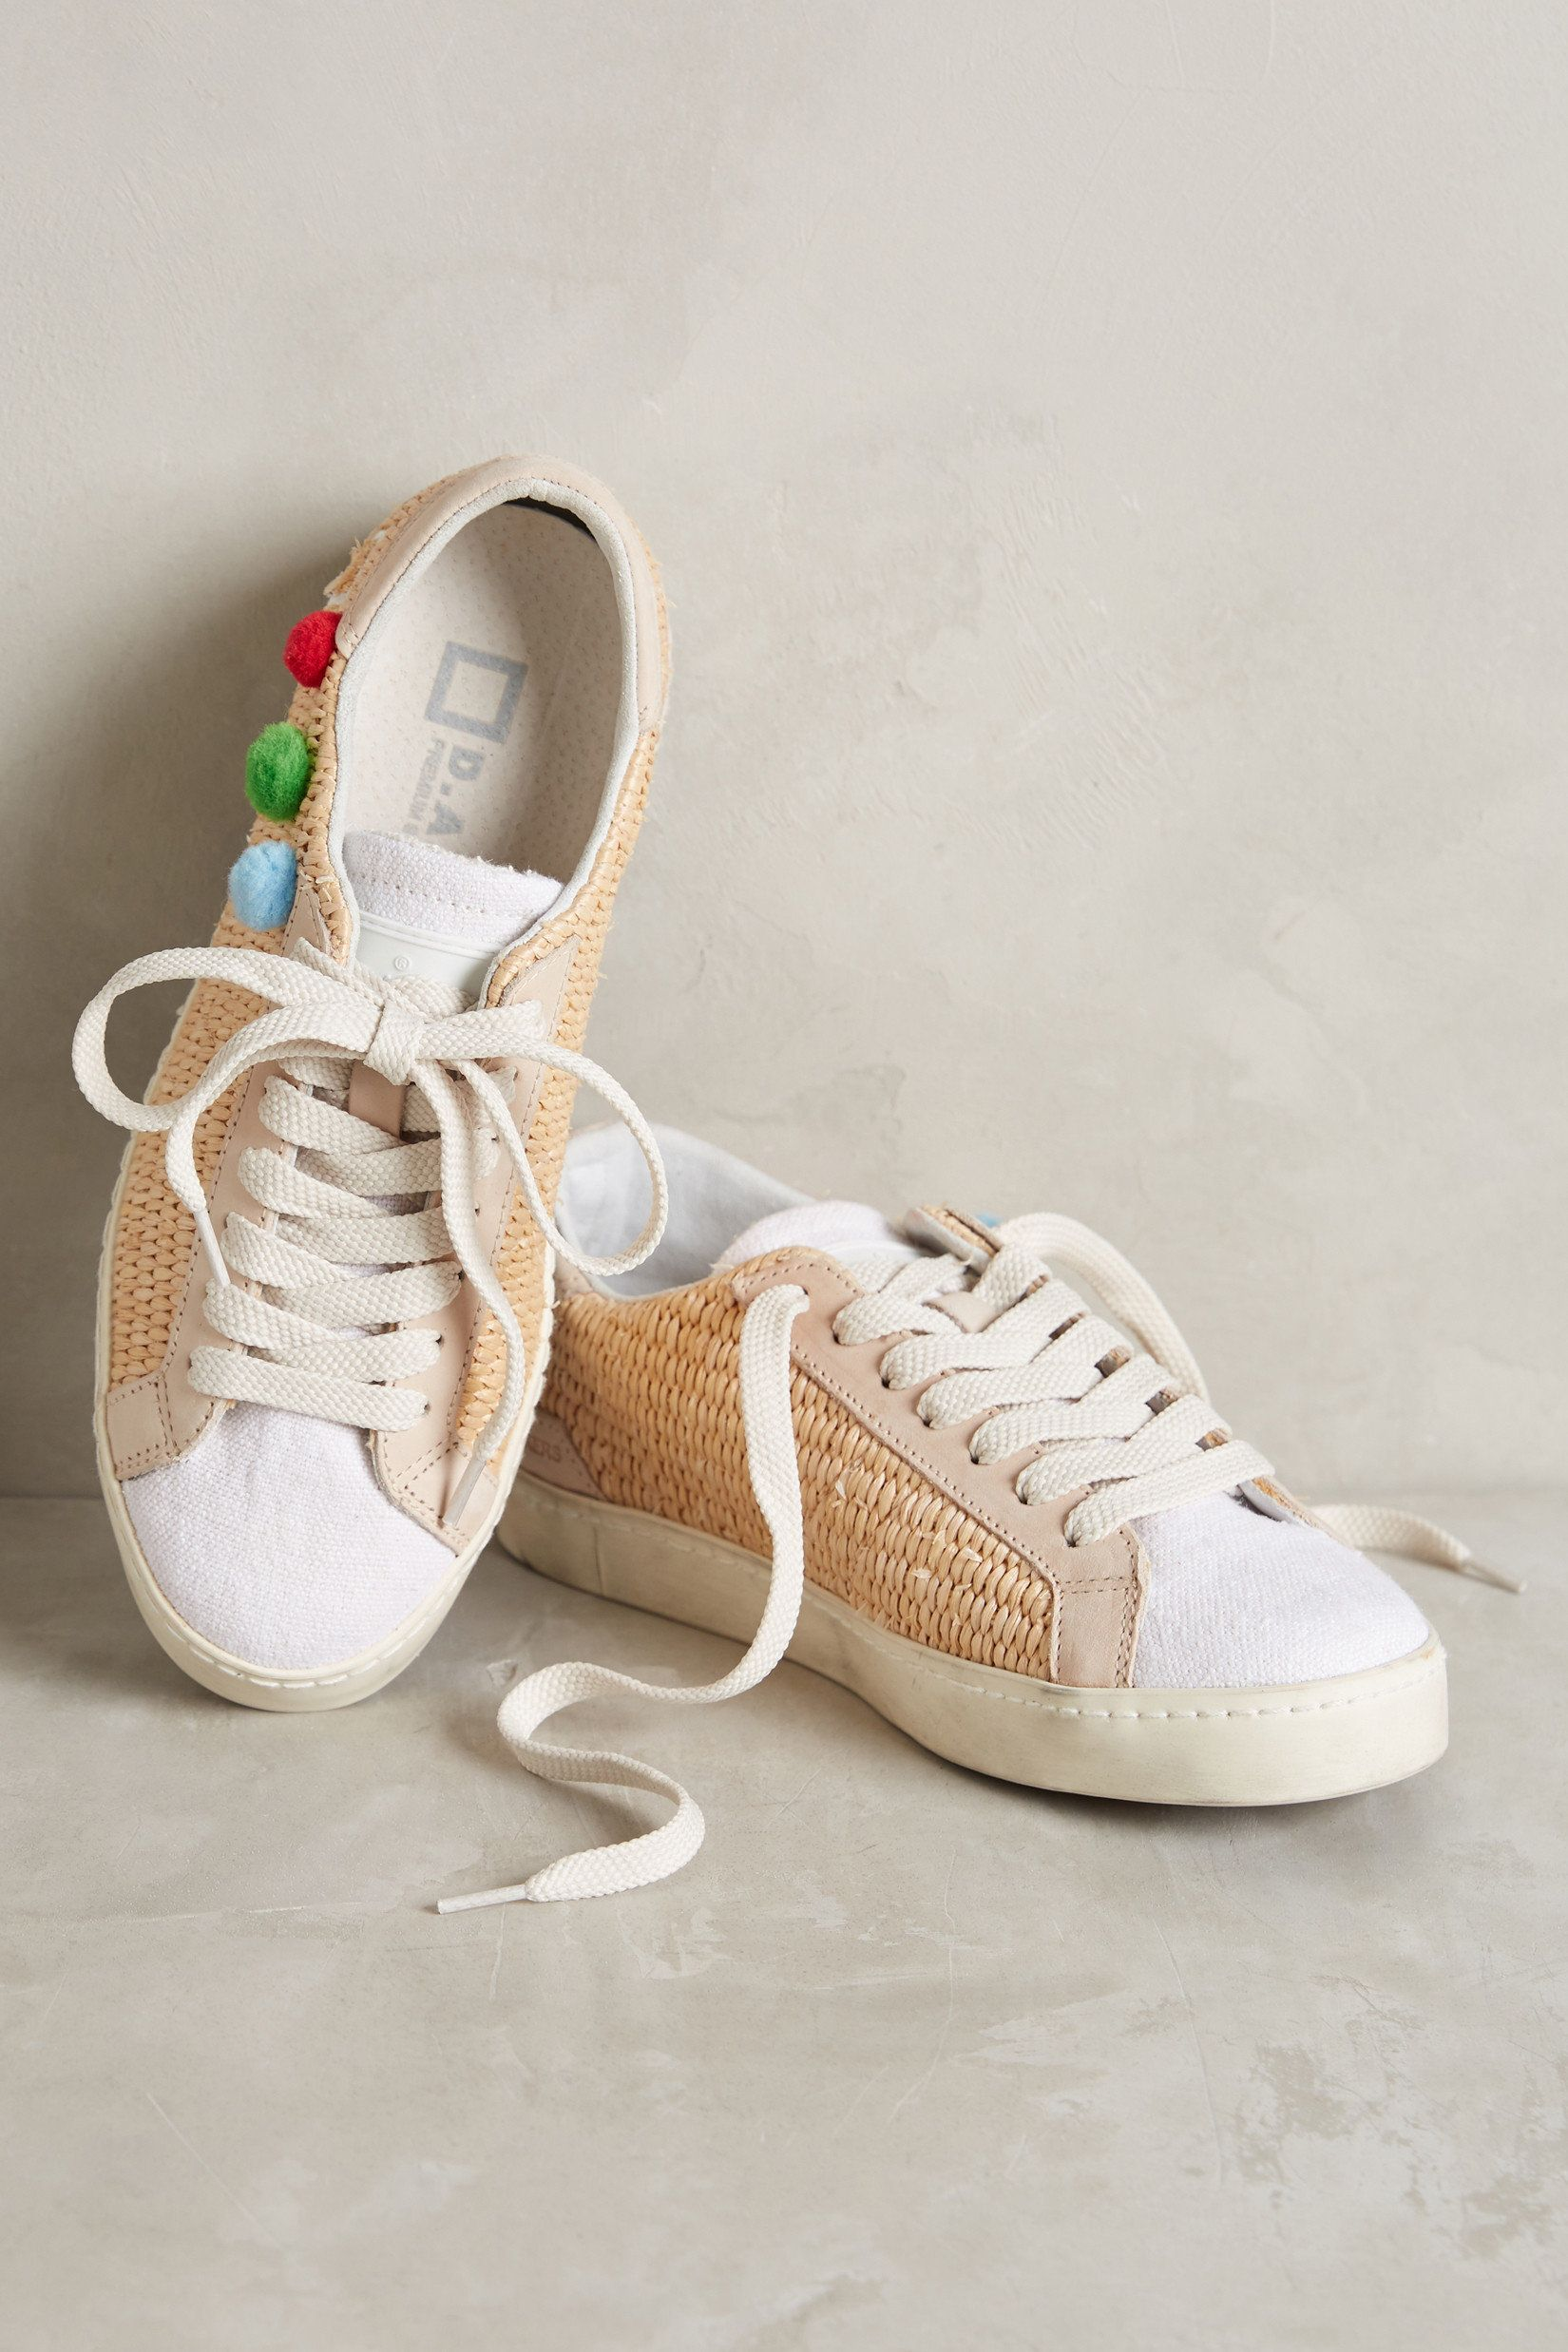 most stylish sneakers for women